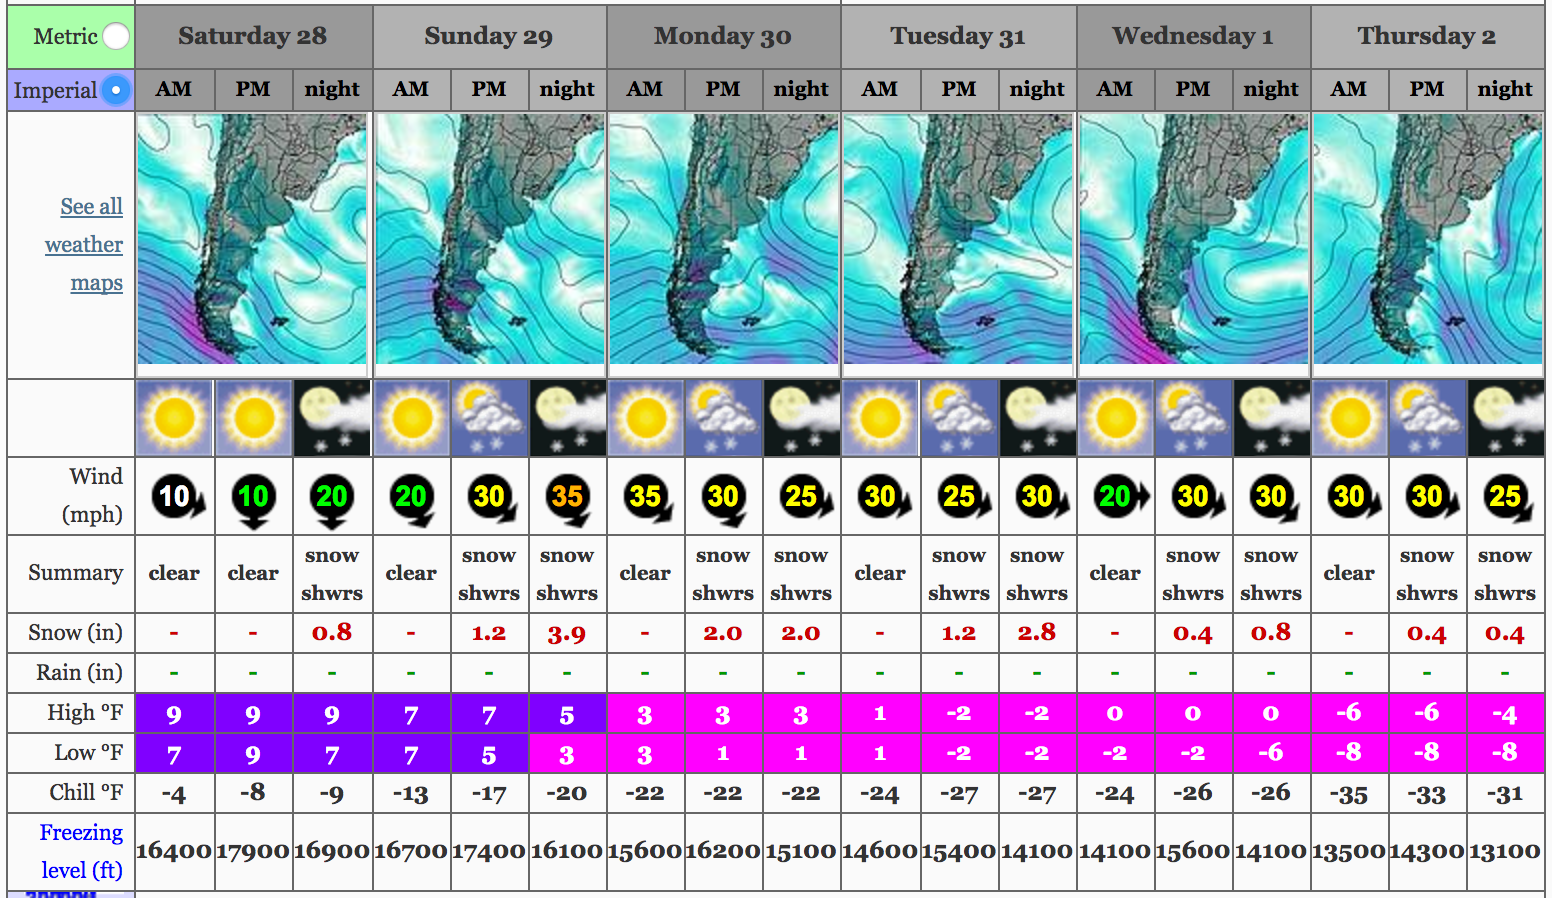 Sunday's wind speeds may be higher than later in the week, but they're still REALLY good for Aconcagua standards. The upcoming colder temps convinced us to go now rather than wait.